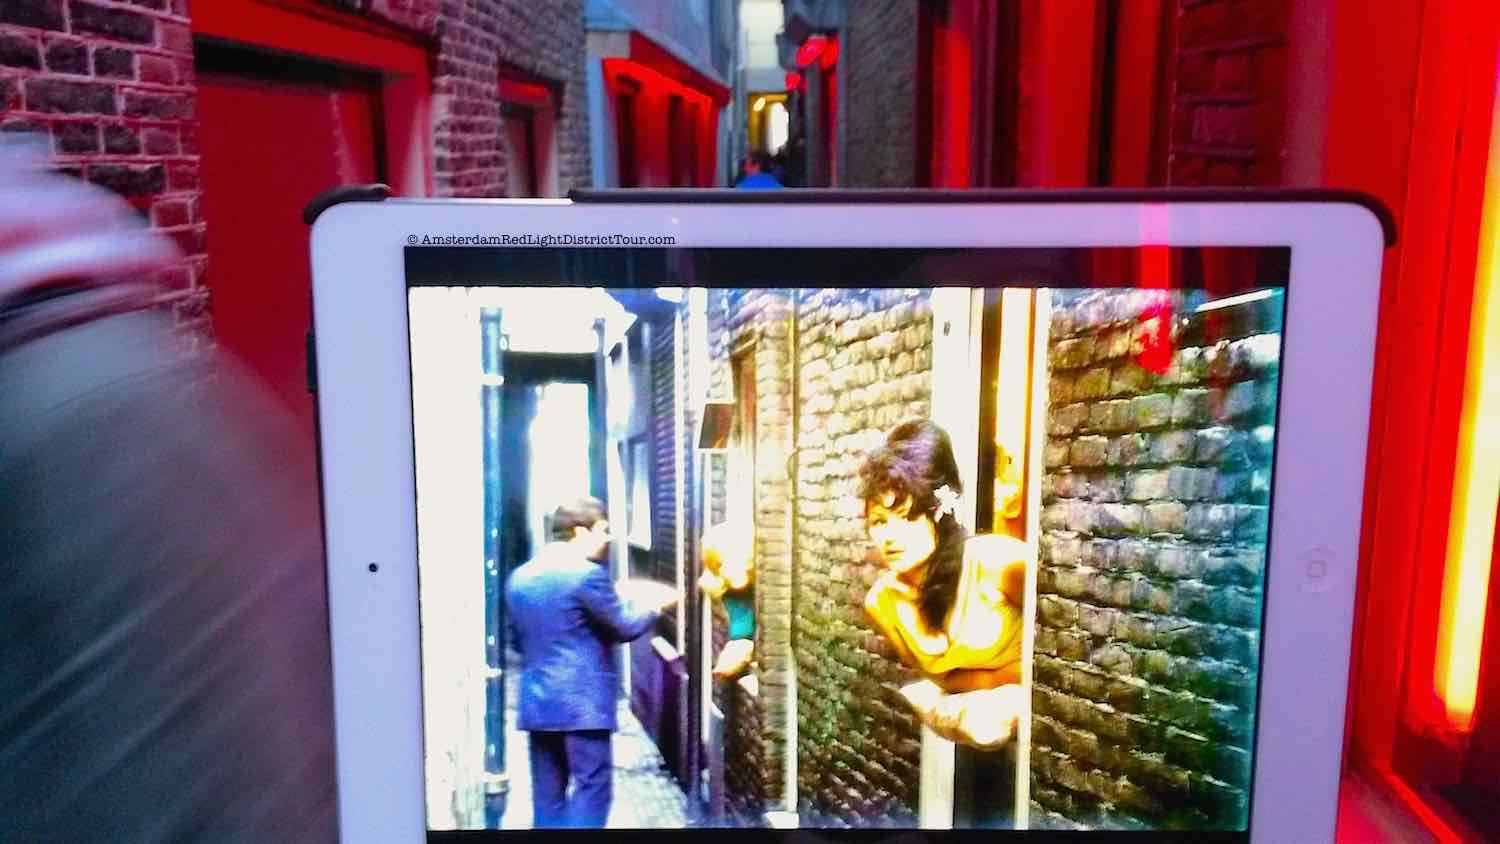 Amsterdam Red Light District Now and then: Narrowest Alley